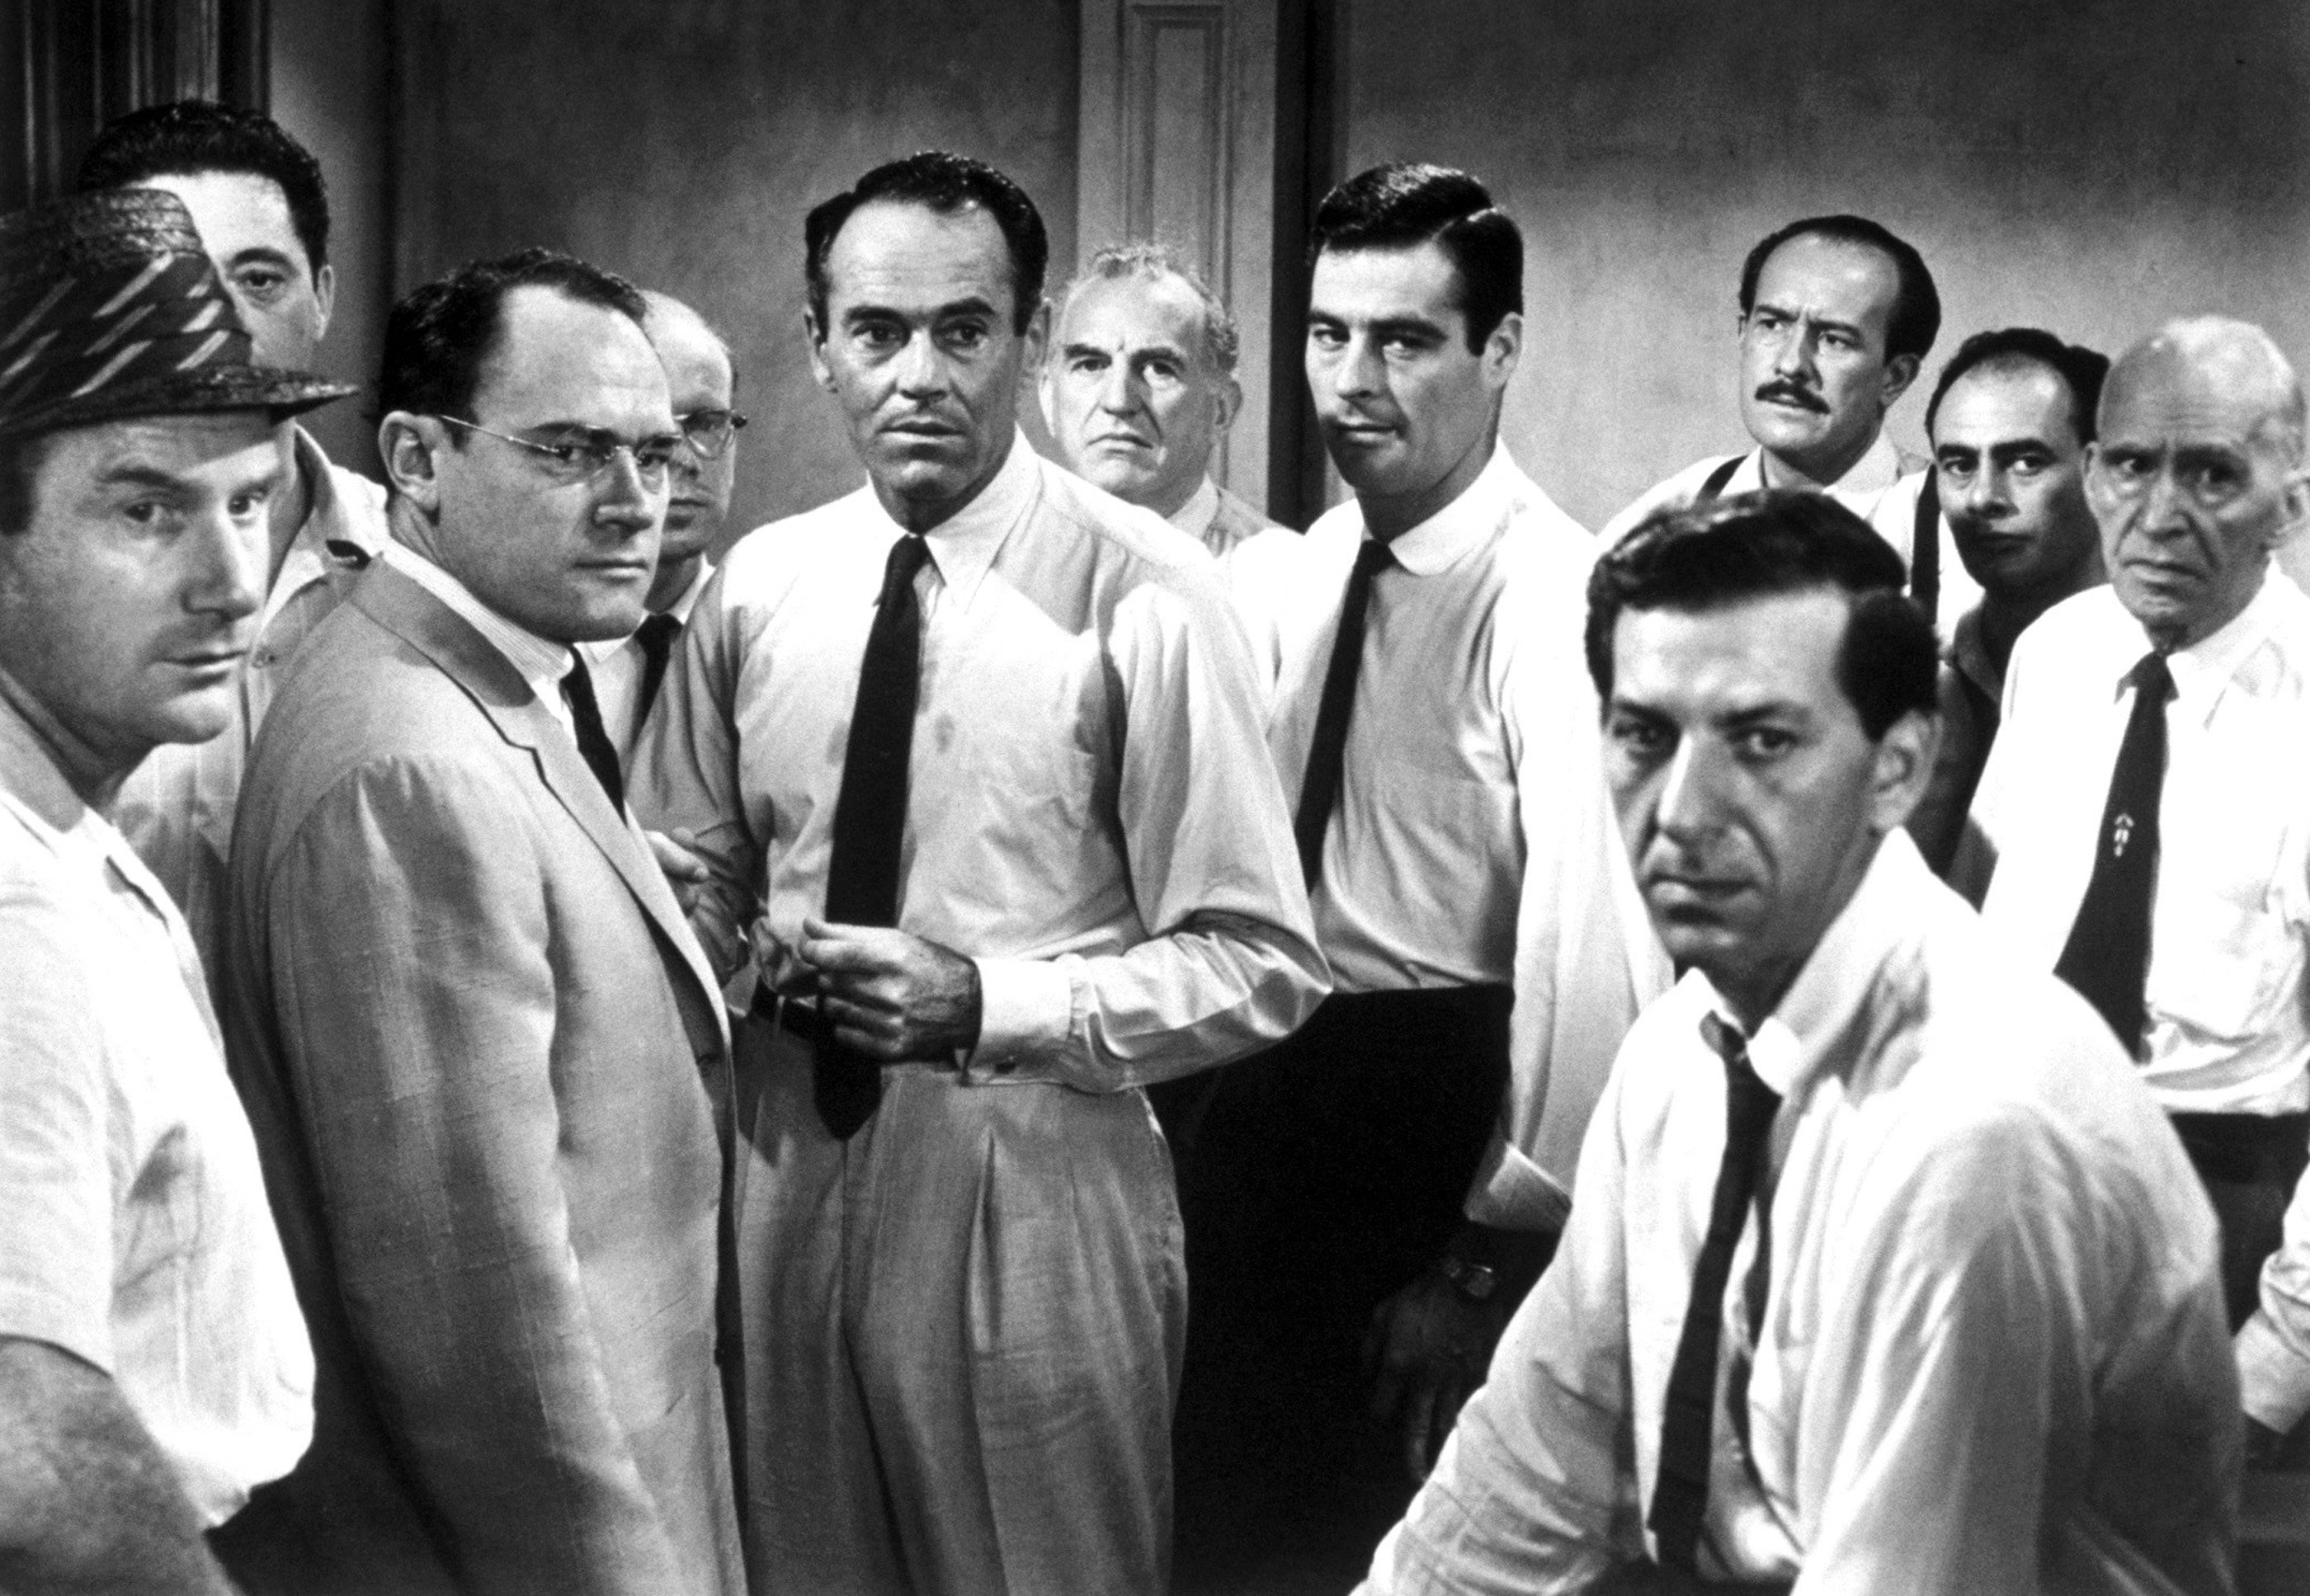 12 Angry Men Men Actors Black White Bw   Stock Photos Images 2800x1935